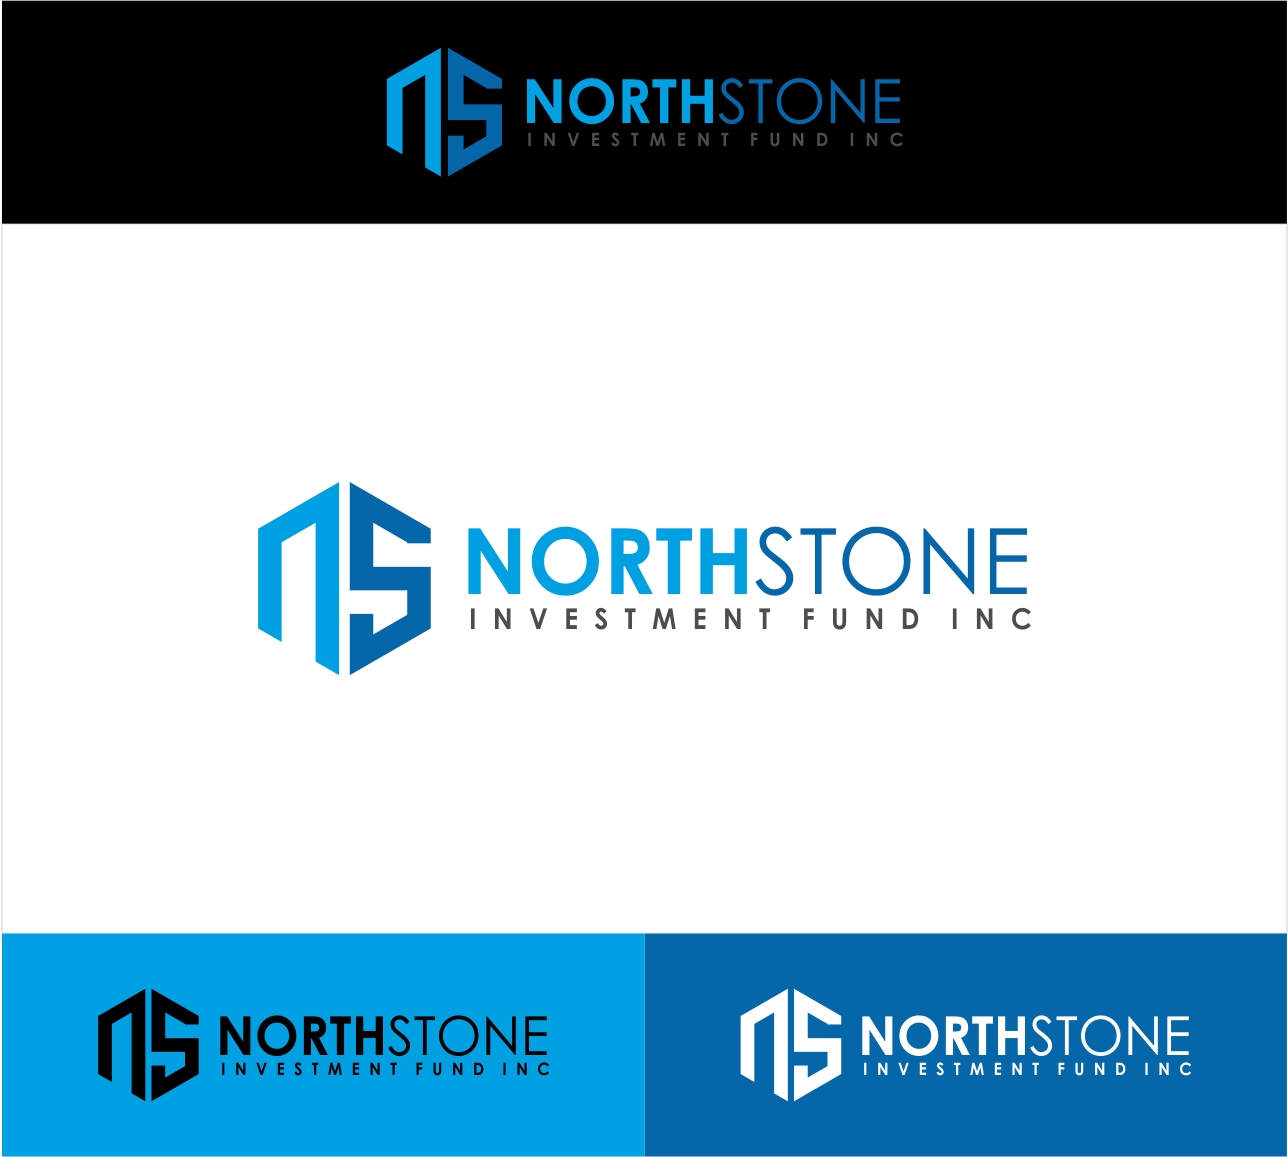 Logo Design by haidu - Entry No. 33 in the Logo Design Contest Unique Logo Design Wanted for NorthStone Investment Fund Inc.